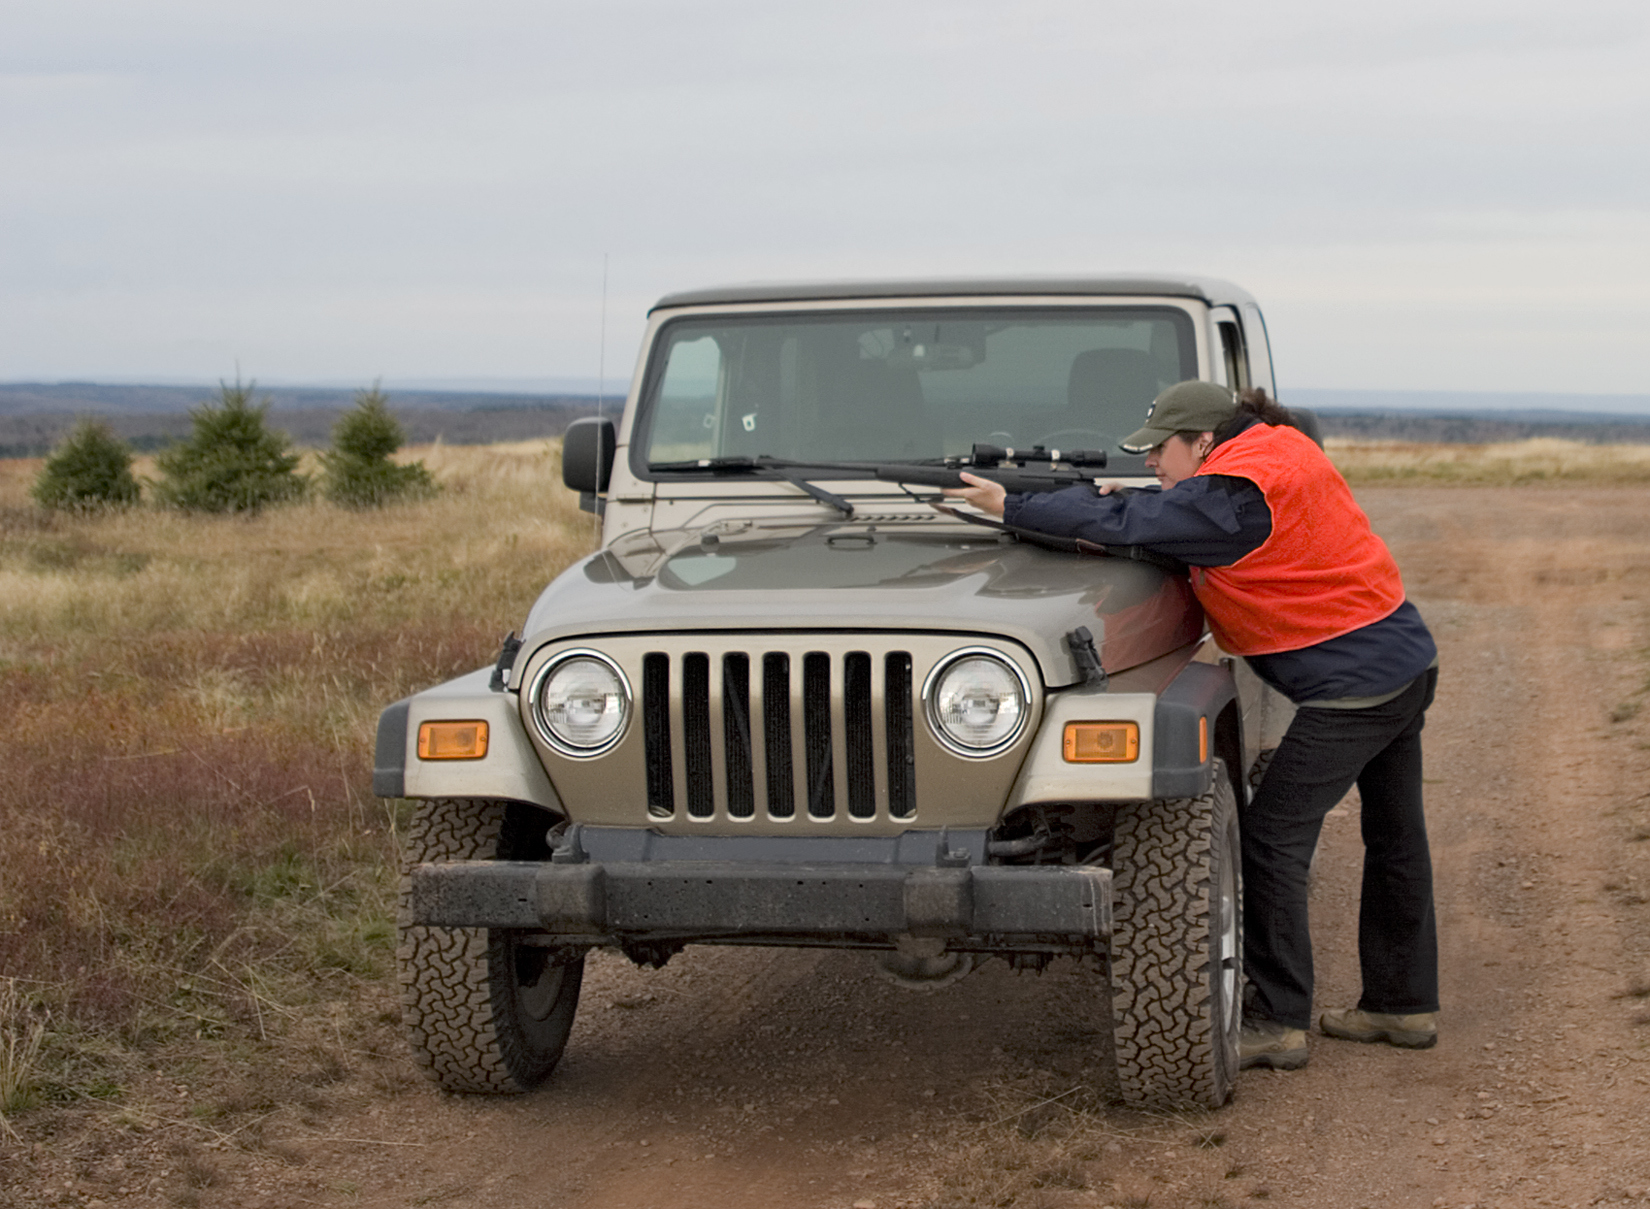 Woman hunter leaning over 4x4 Jeep with a gun